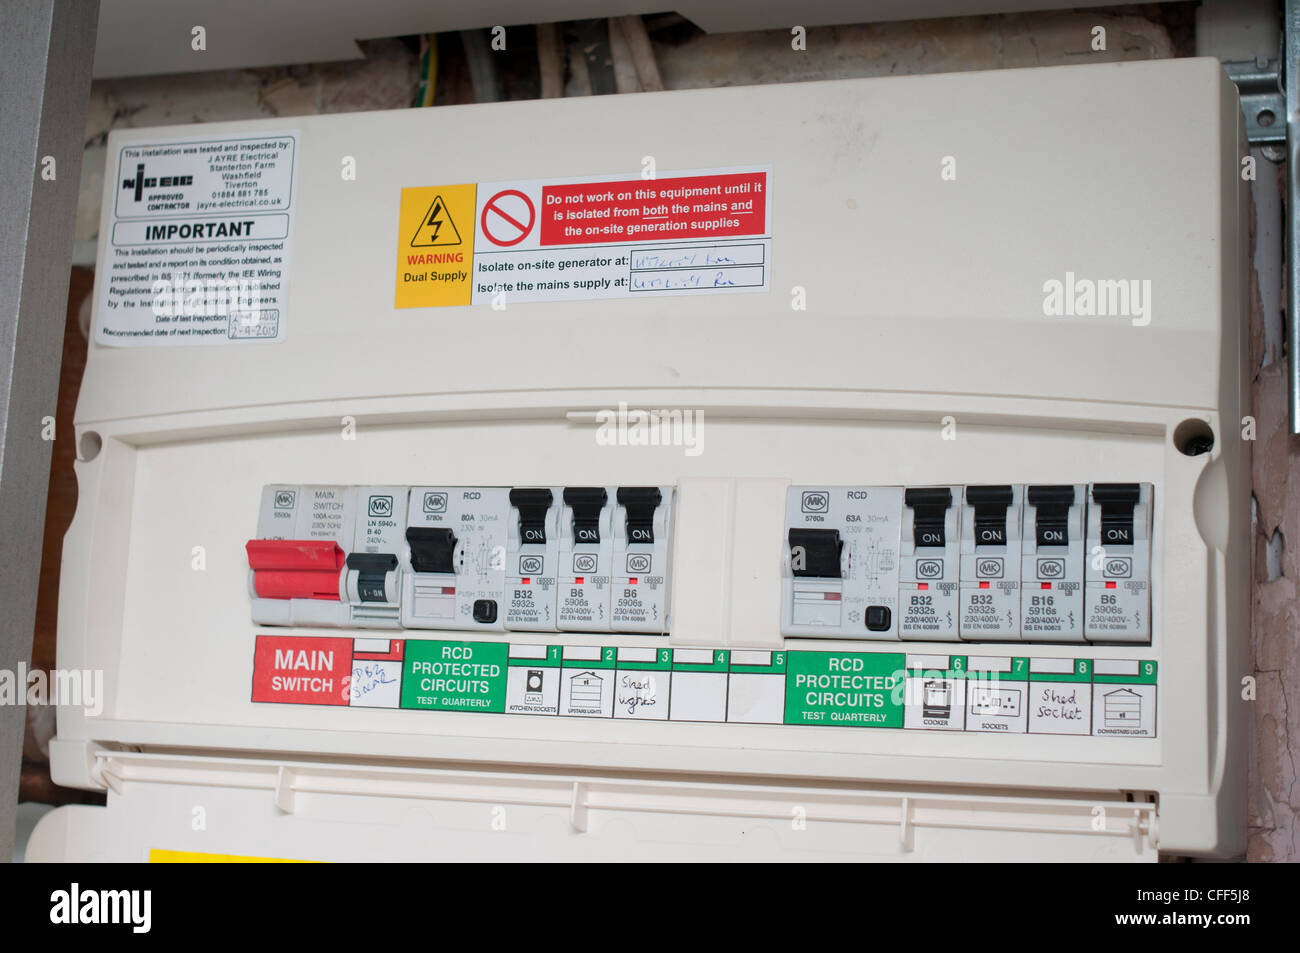 fuse box house stock photos fuse box house stock images alamy rh alamy com house fuse box wiring diagram house fuse box location